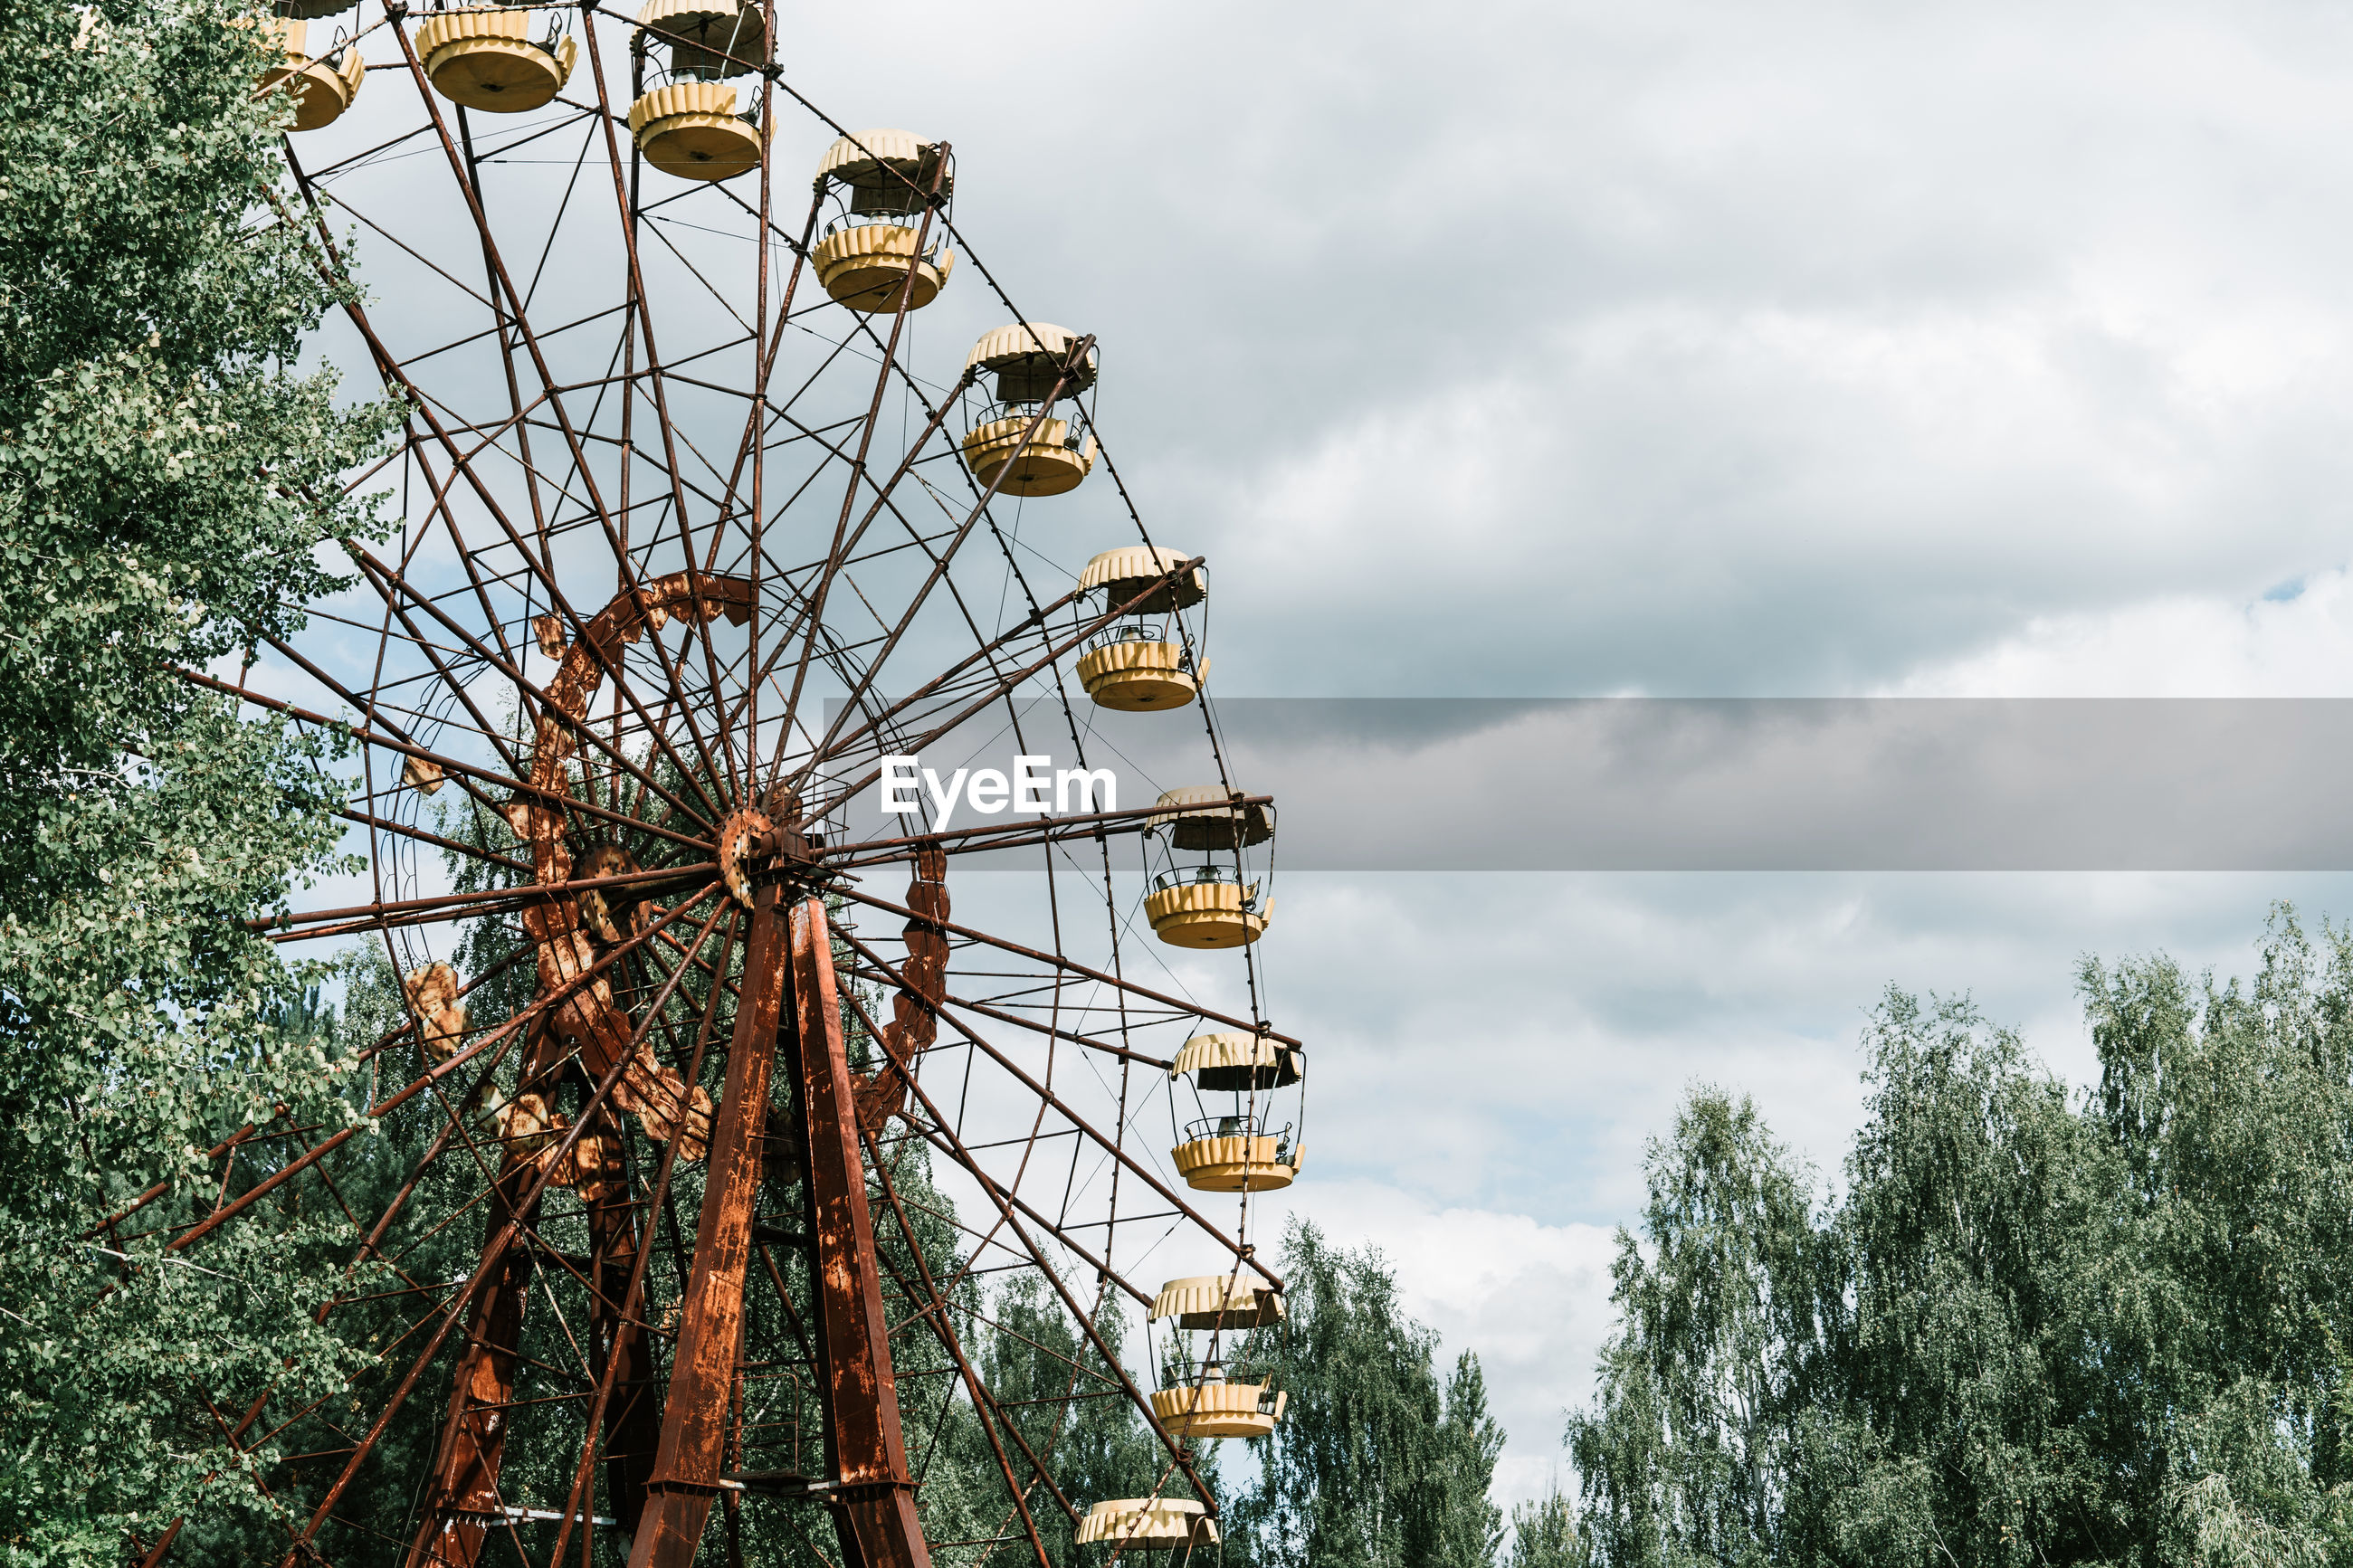 Low angle view of abandoned ferris wheel against sky near chernobyl